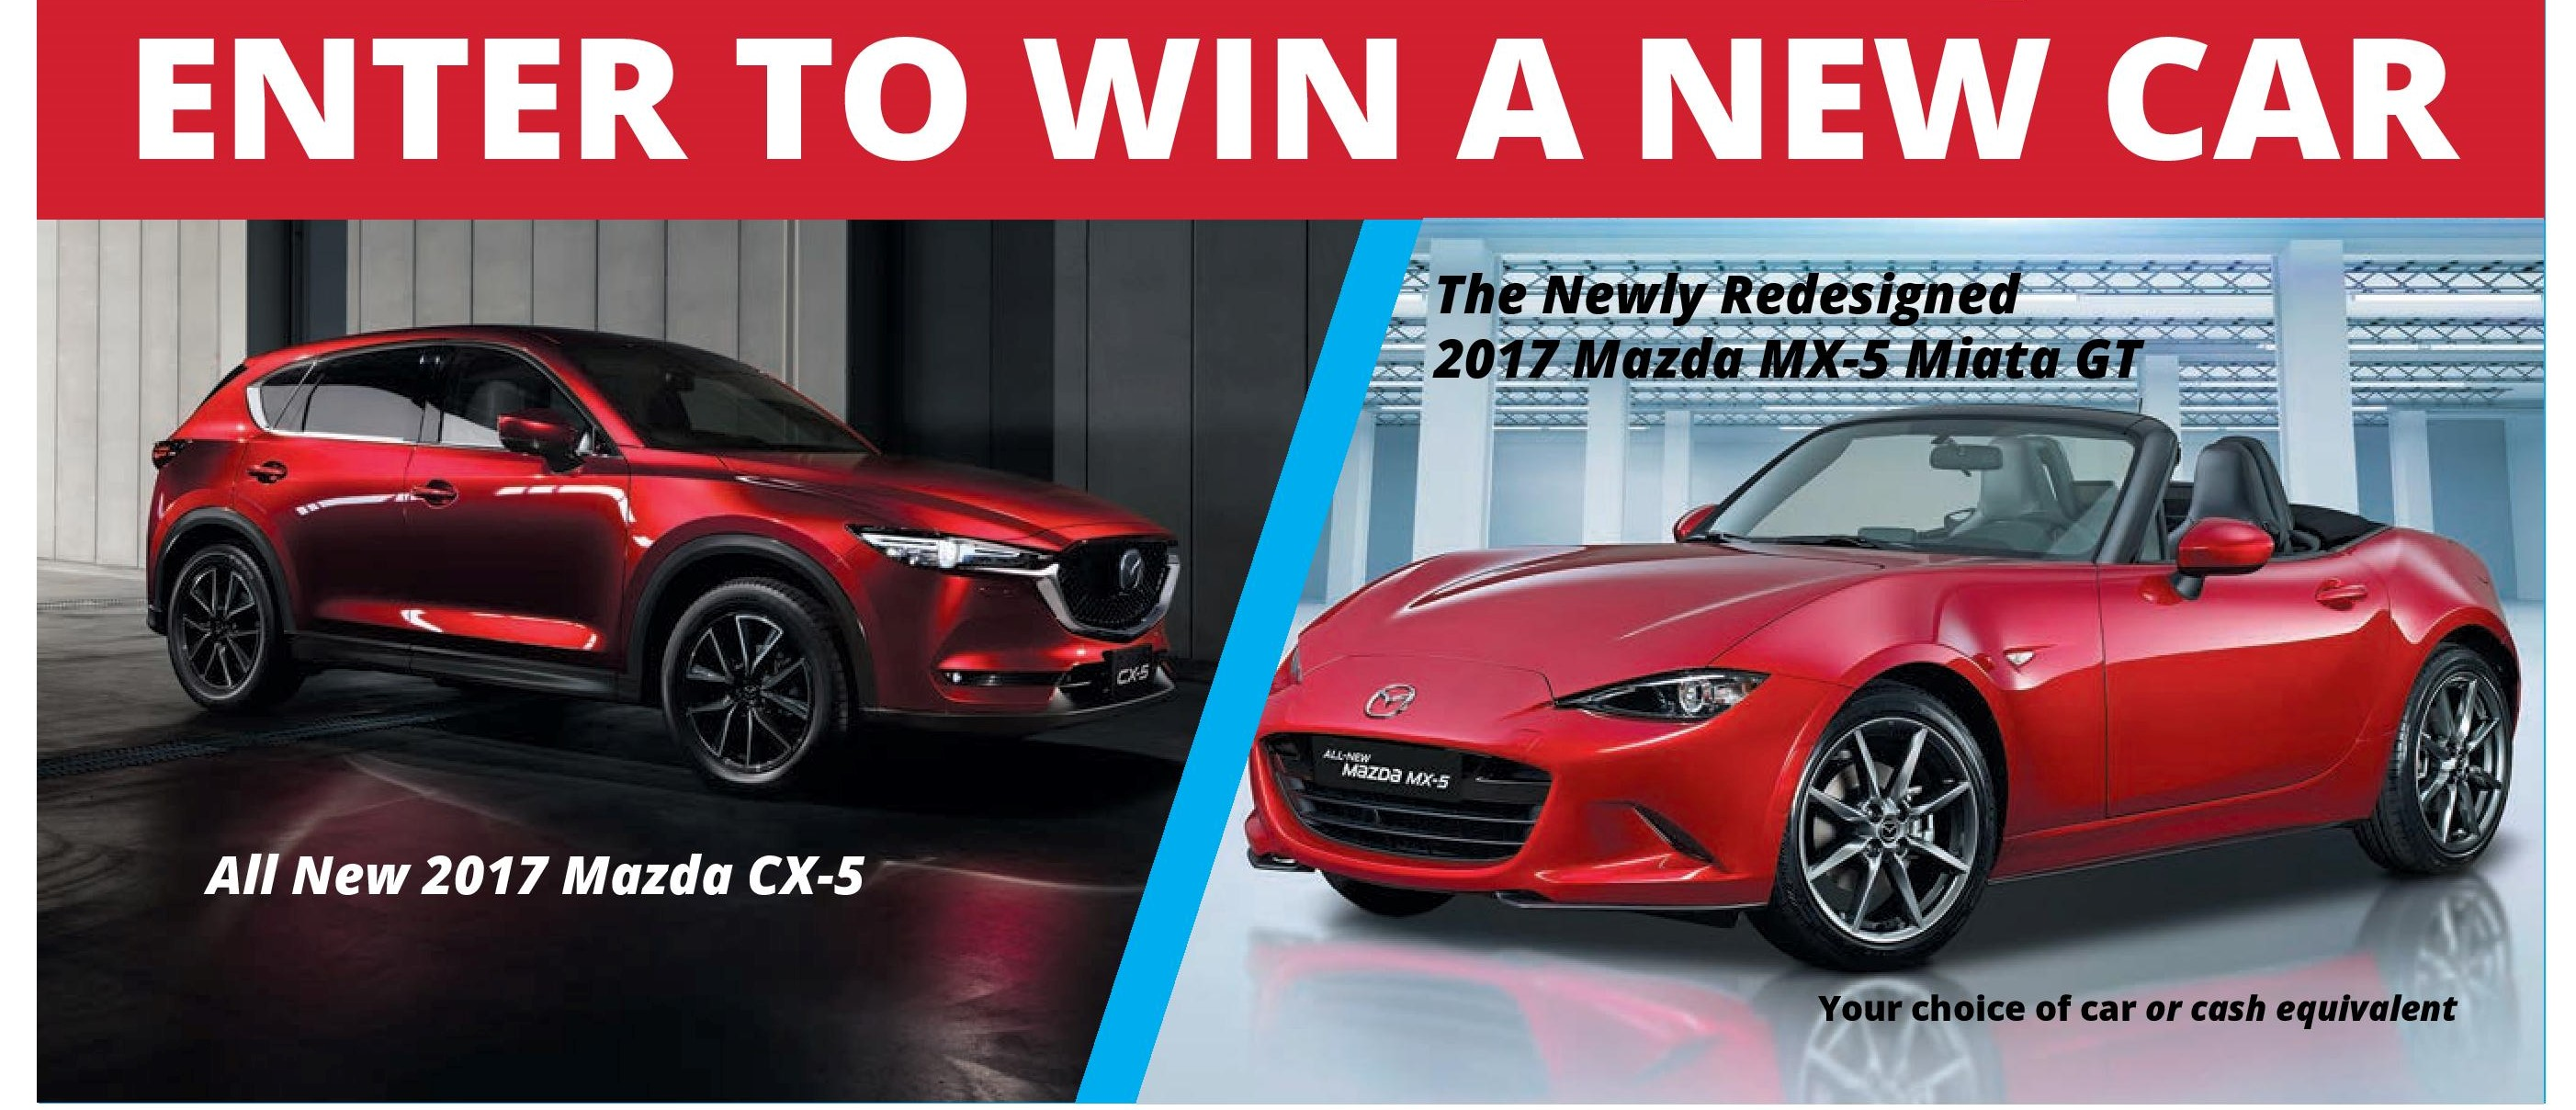 Win A Car: New Wheels Raffle 2017: Your Chance To Win A New Car